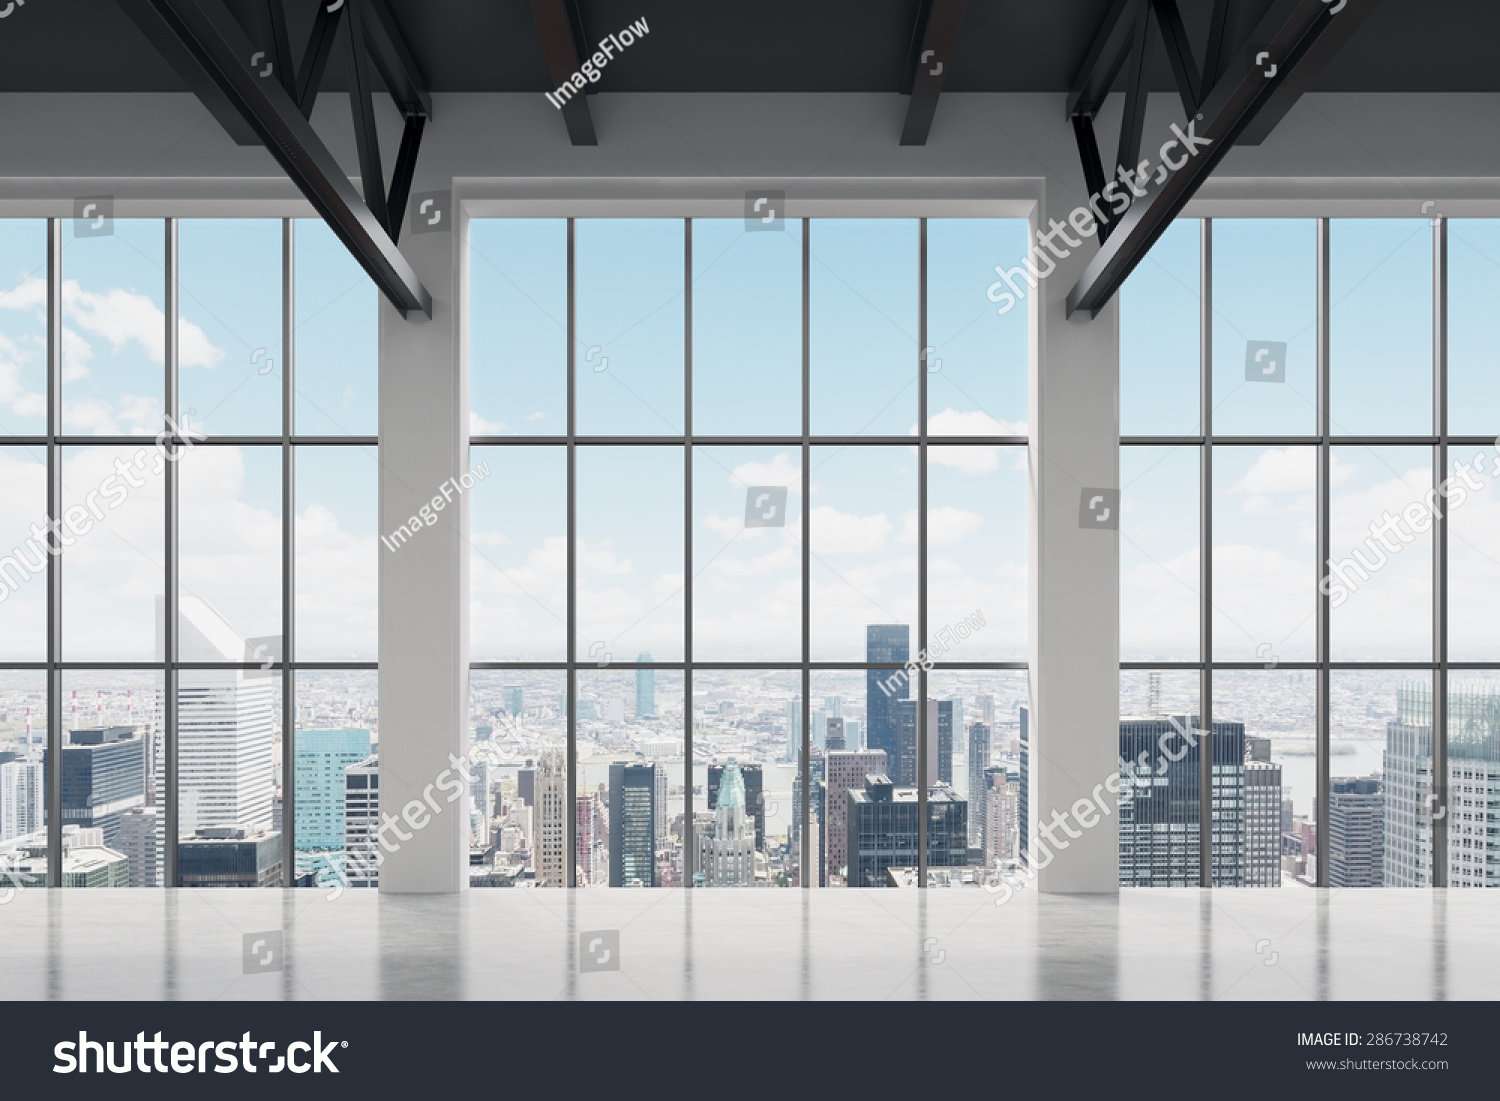 Contemporary office space new york view stock photo 286738742 shutterstock - Small office space nyc concept ...